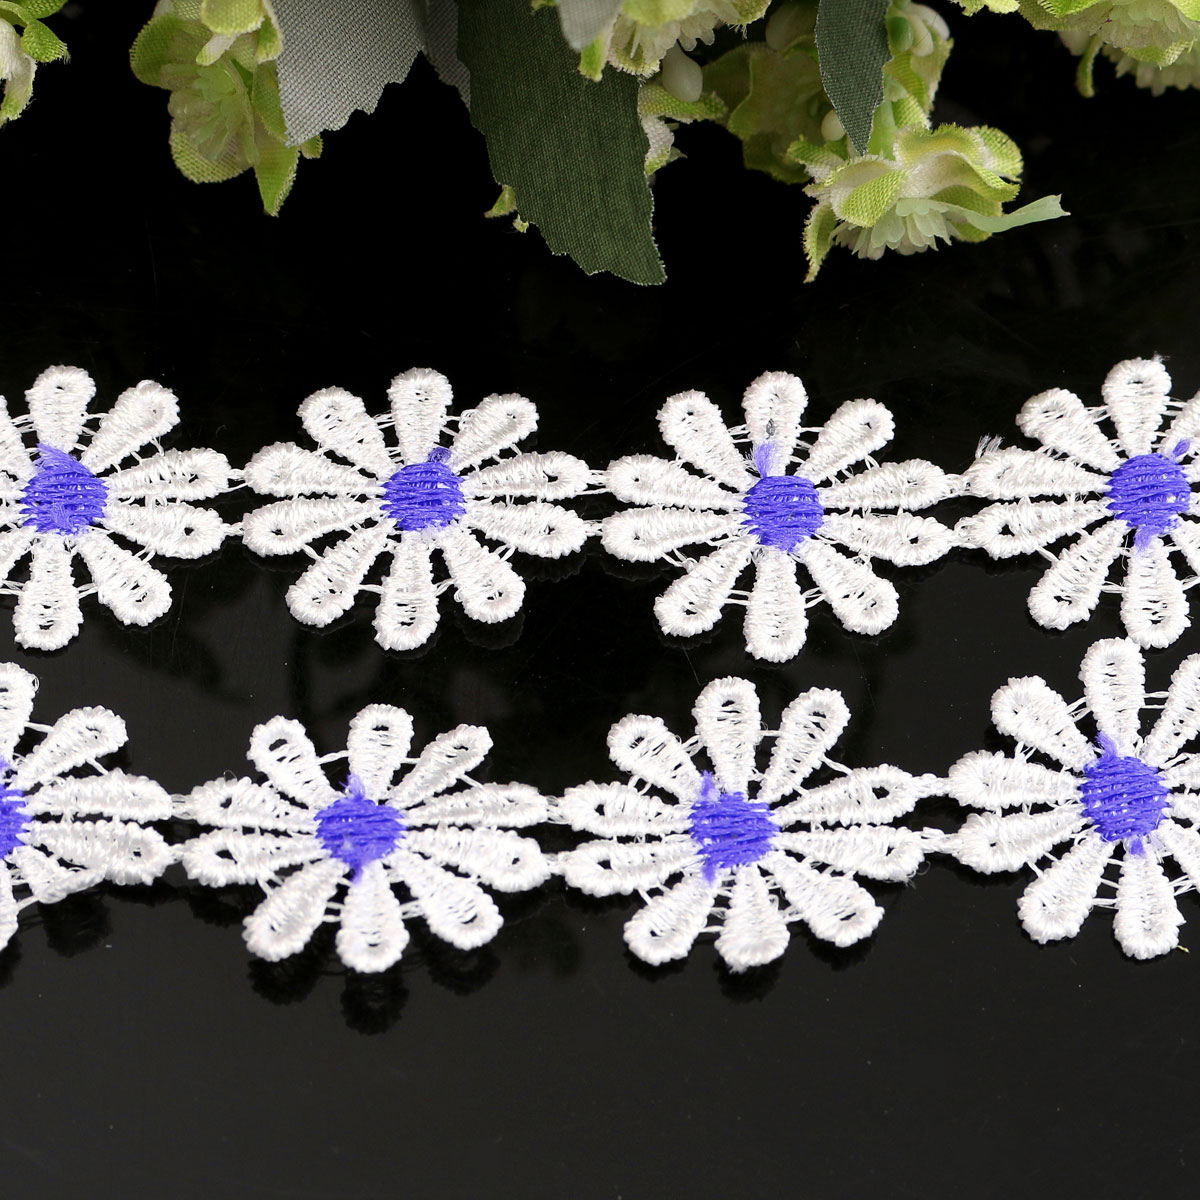 Fabric Flower Trim: 1 Yard White Flower Embroidered Lace Trim Fabric Sewing